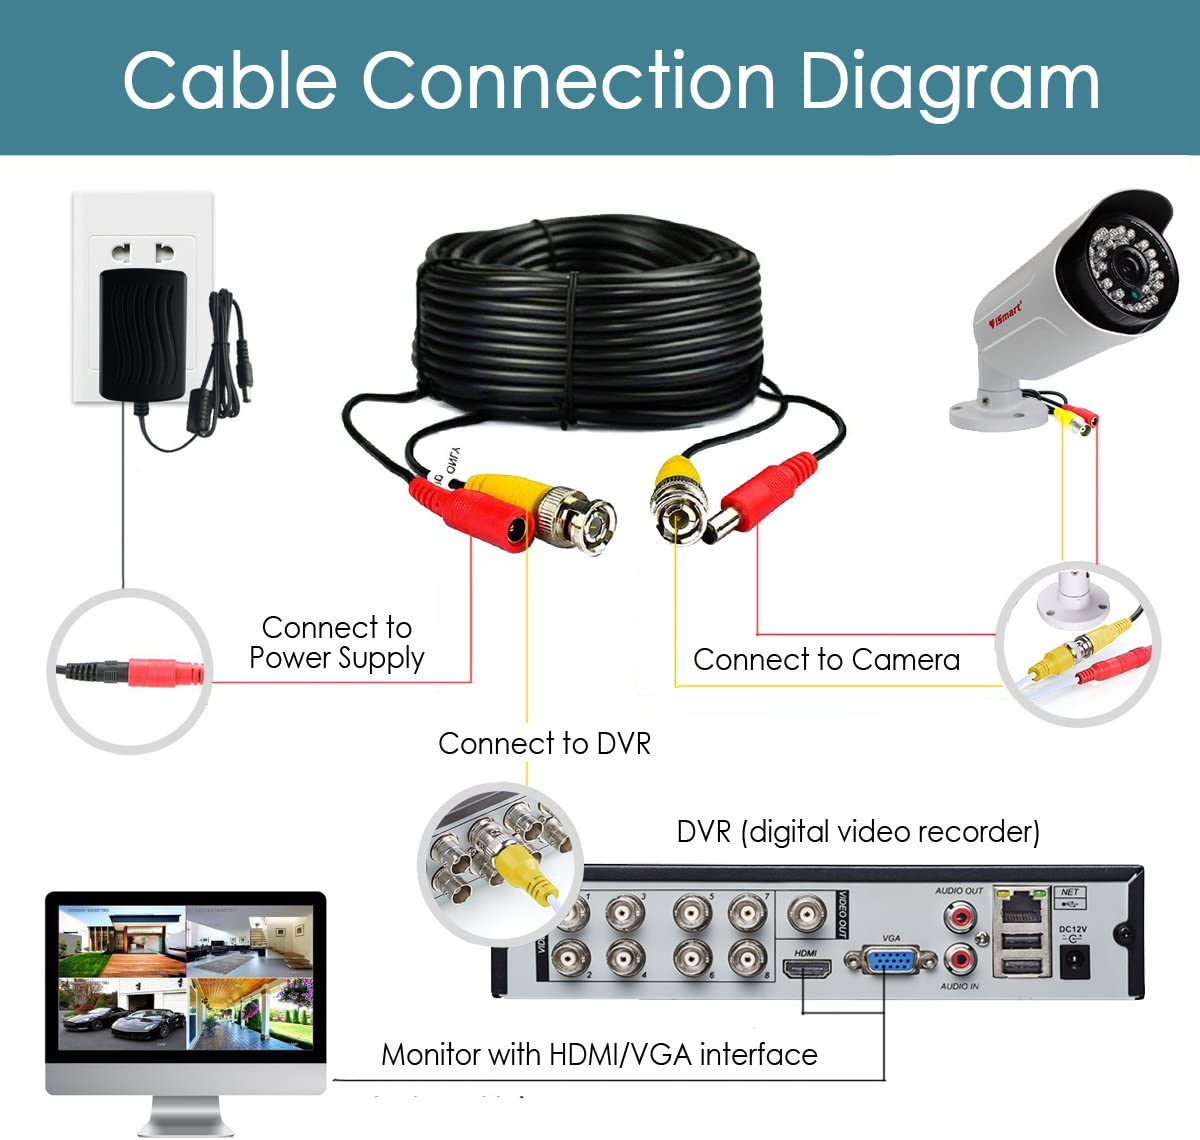 Black 4-Pack 125ft Black Pre-Made All-in-One BNC Male to Male Video and Power Cable with RCA Connector for CCTV Camera DVR Security System